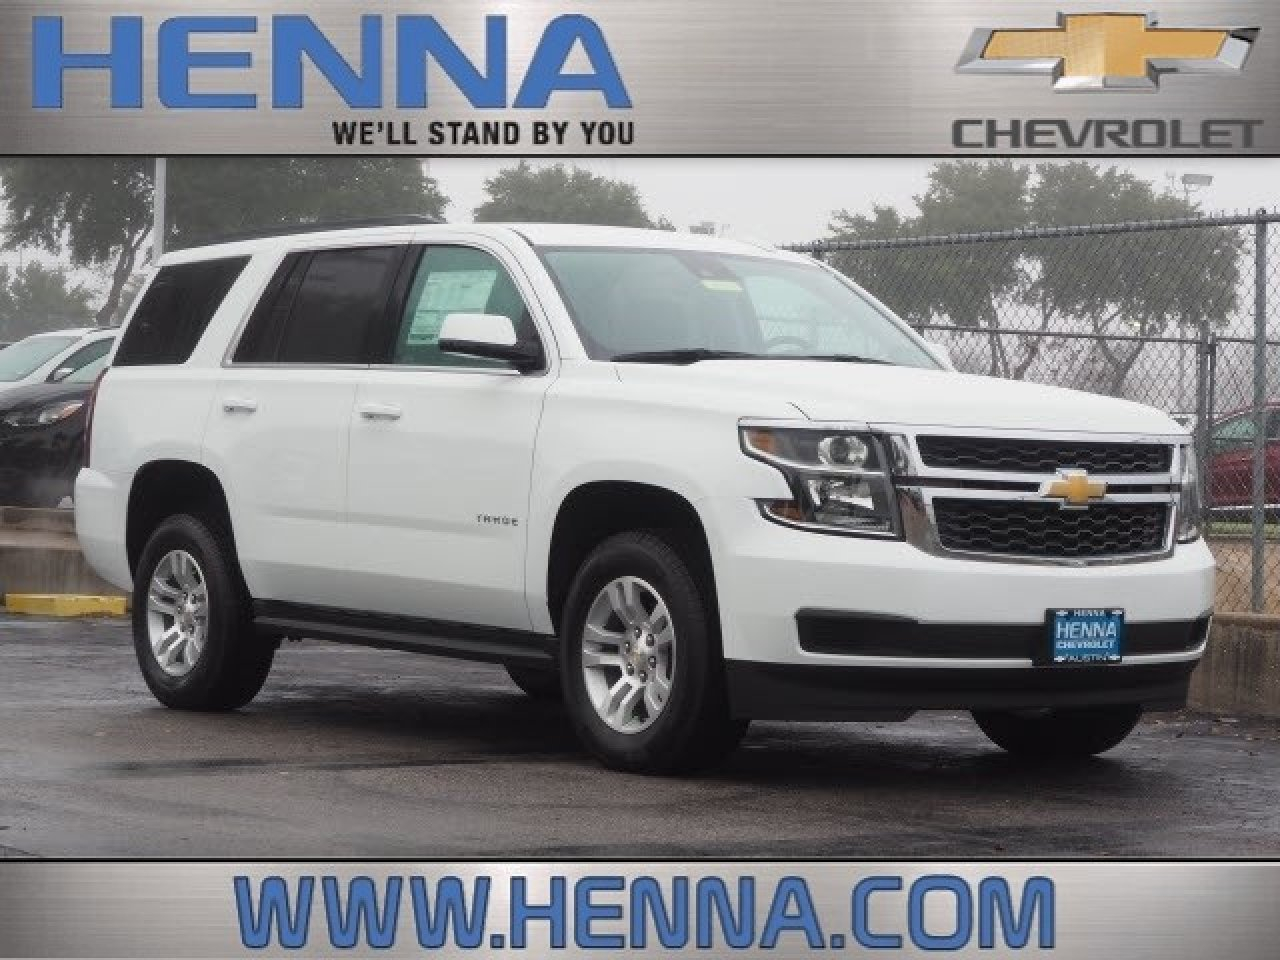 2020 Chevrolet Tahoe Ls 1Gnskaec5Lr235030   Henna Chevrolet Is A 2021 Chevy Traverse Flat Towable Cost, Battery Location, Bumper